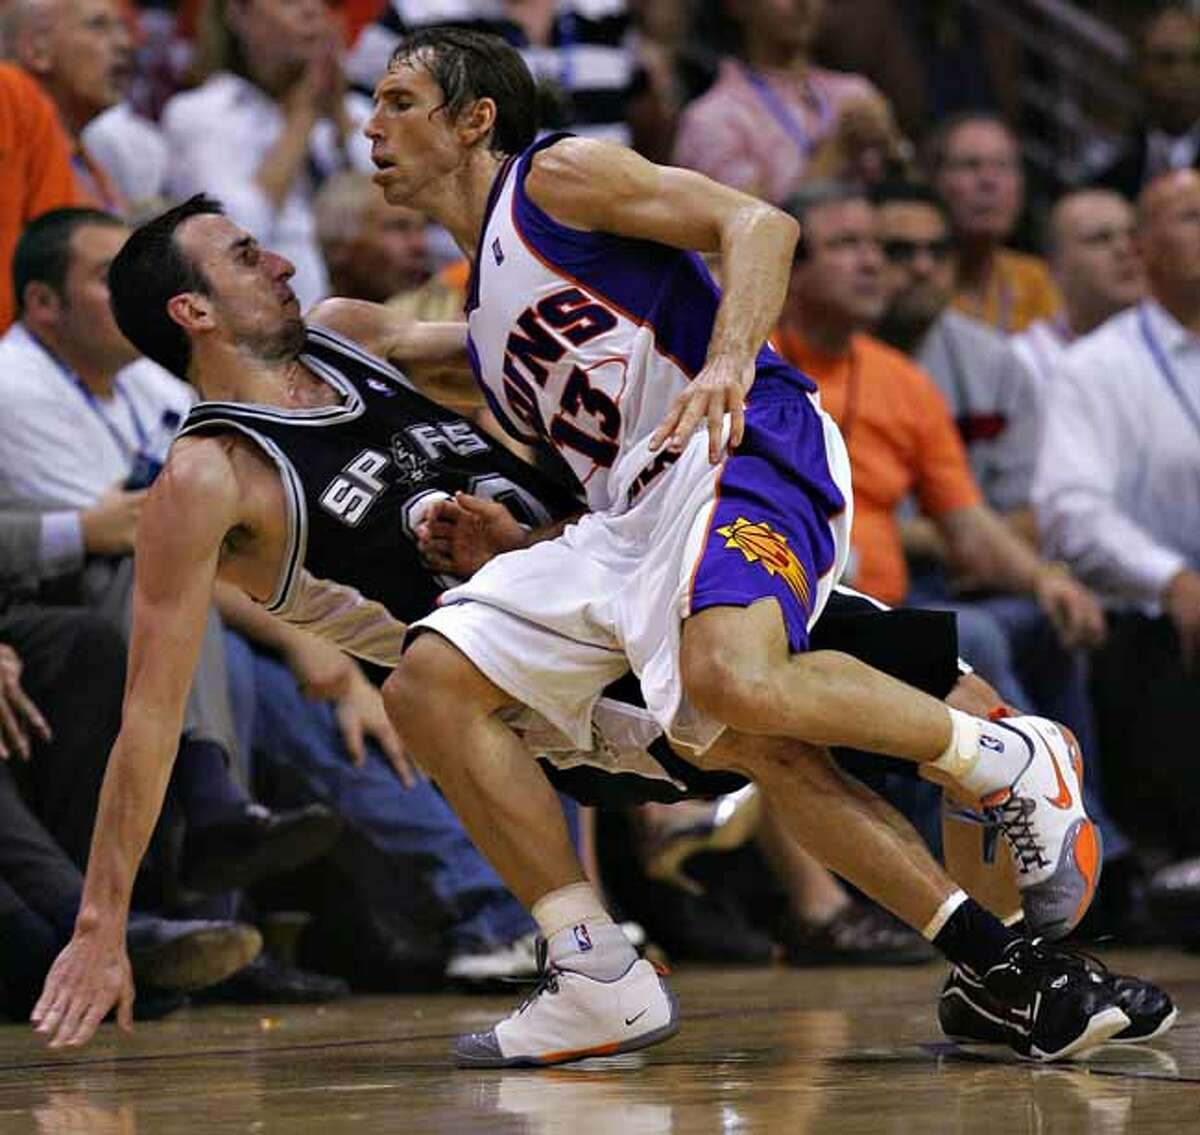 Spurs guard Manu Ginobili is fouled by Steve Nash on a three-point attempt in the second half of Game 5 of the Western Conference Semifinals on May 14, 2007, at the U.S. Airways Center.